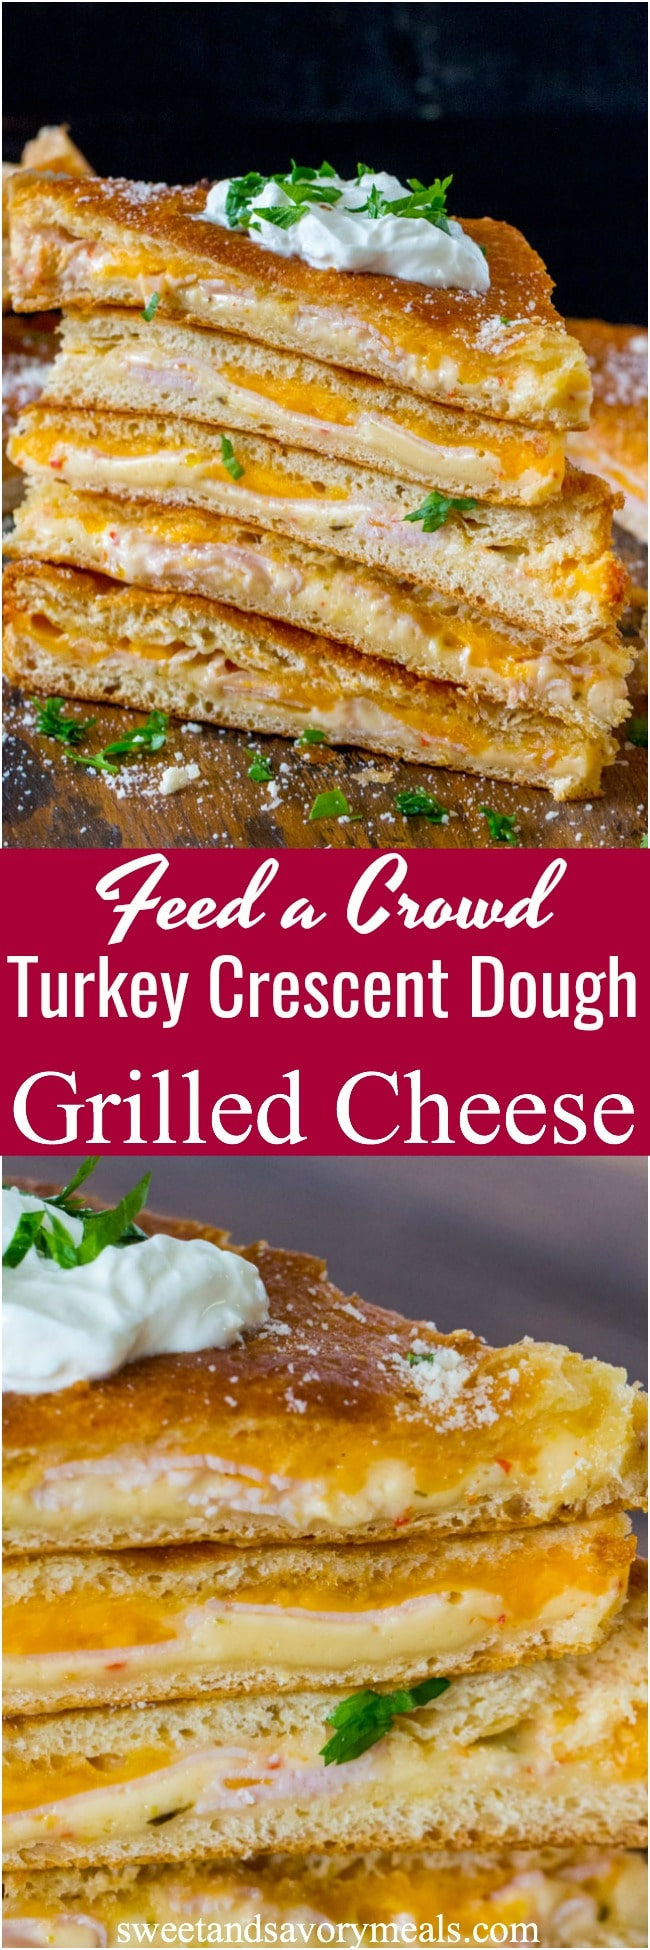 Turkey Grilled Cheese sandwiches made easy to cook in a large batch using crescent dough sheets. Delicious and fit to feed a crowd with minimum effort!